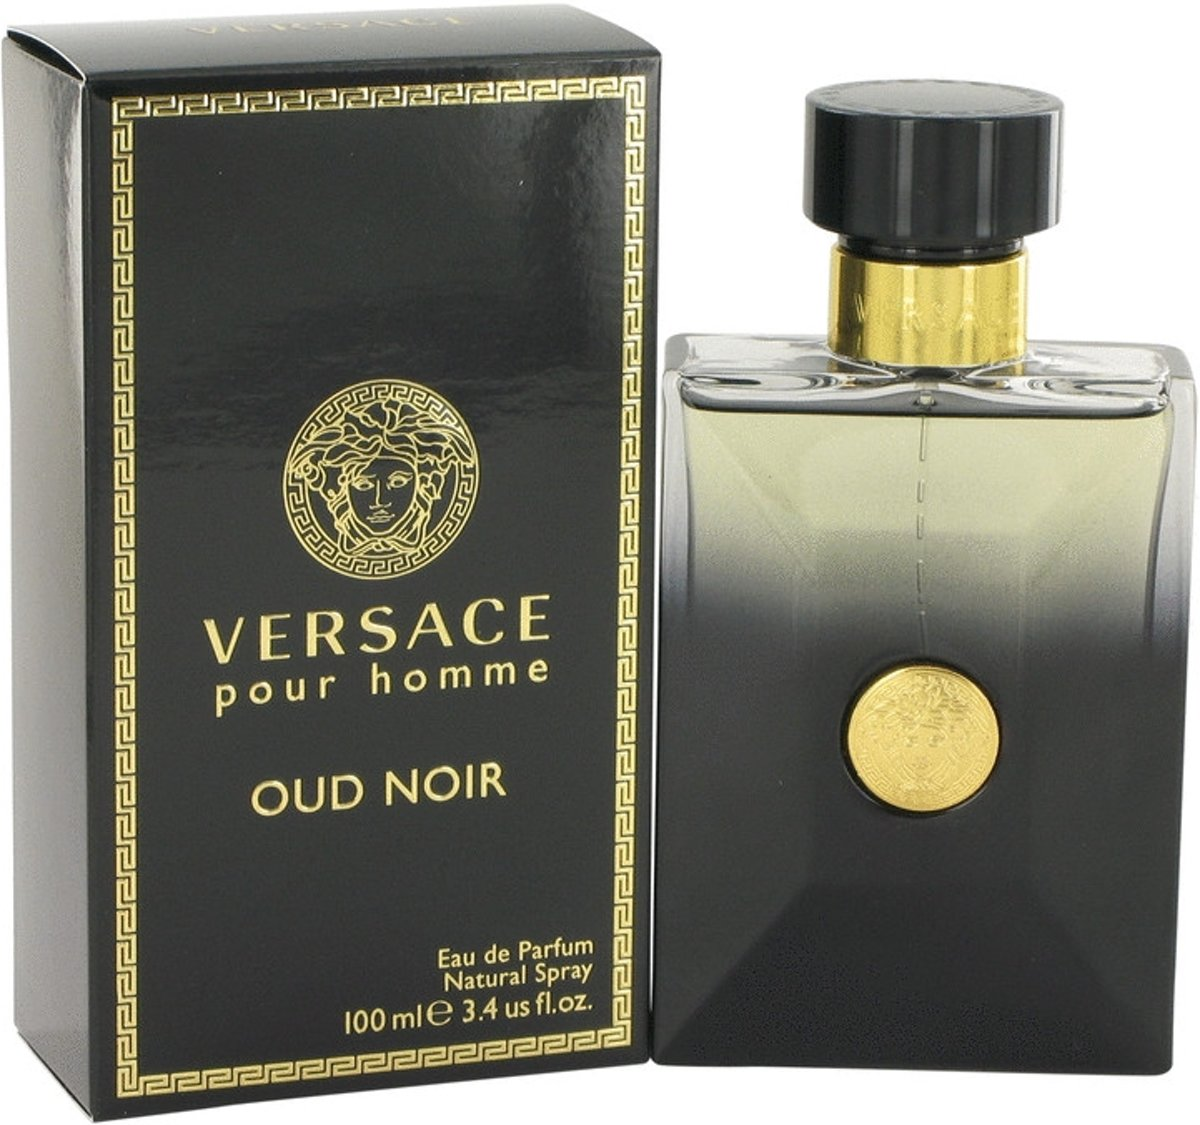 Versace Pour Homme Oud Noir By Gianni Versace Eau De Parfum Spray 100 ml - Fragrances For Men